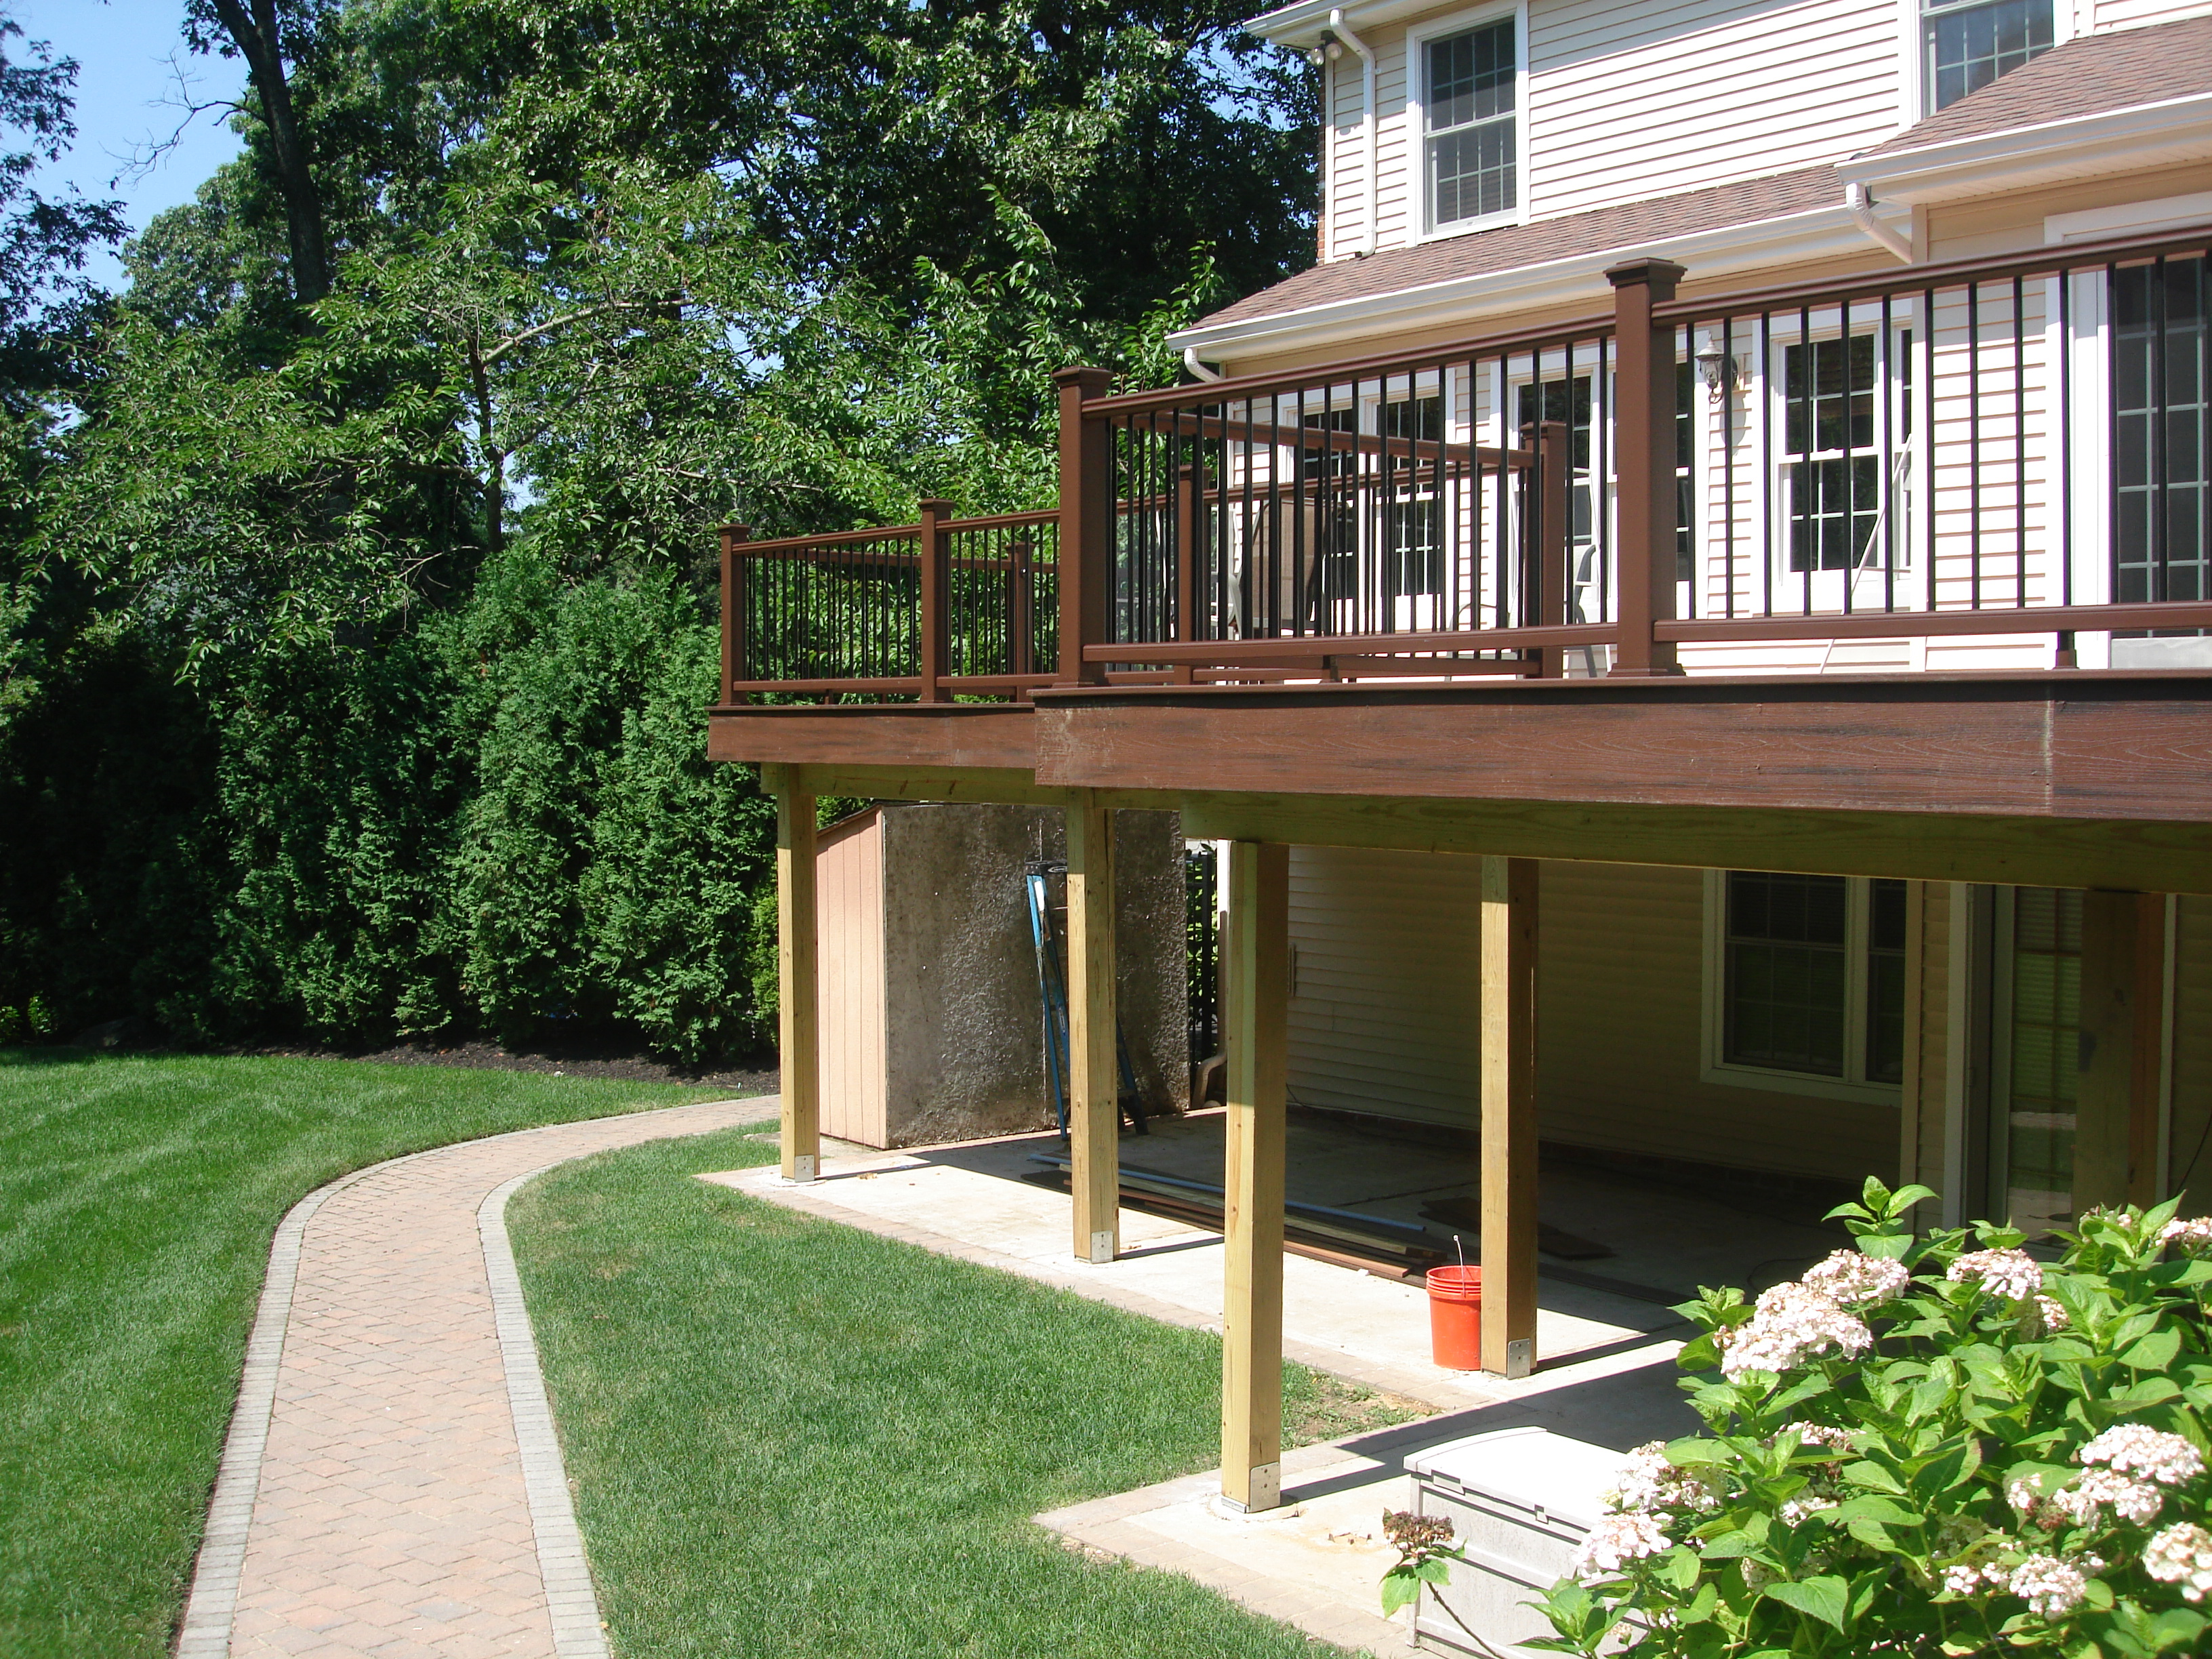 Pin second floor deck on pinterest for Second floor deck